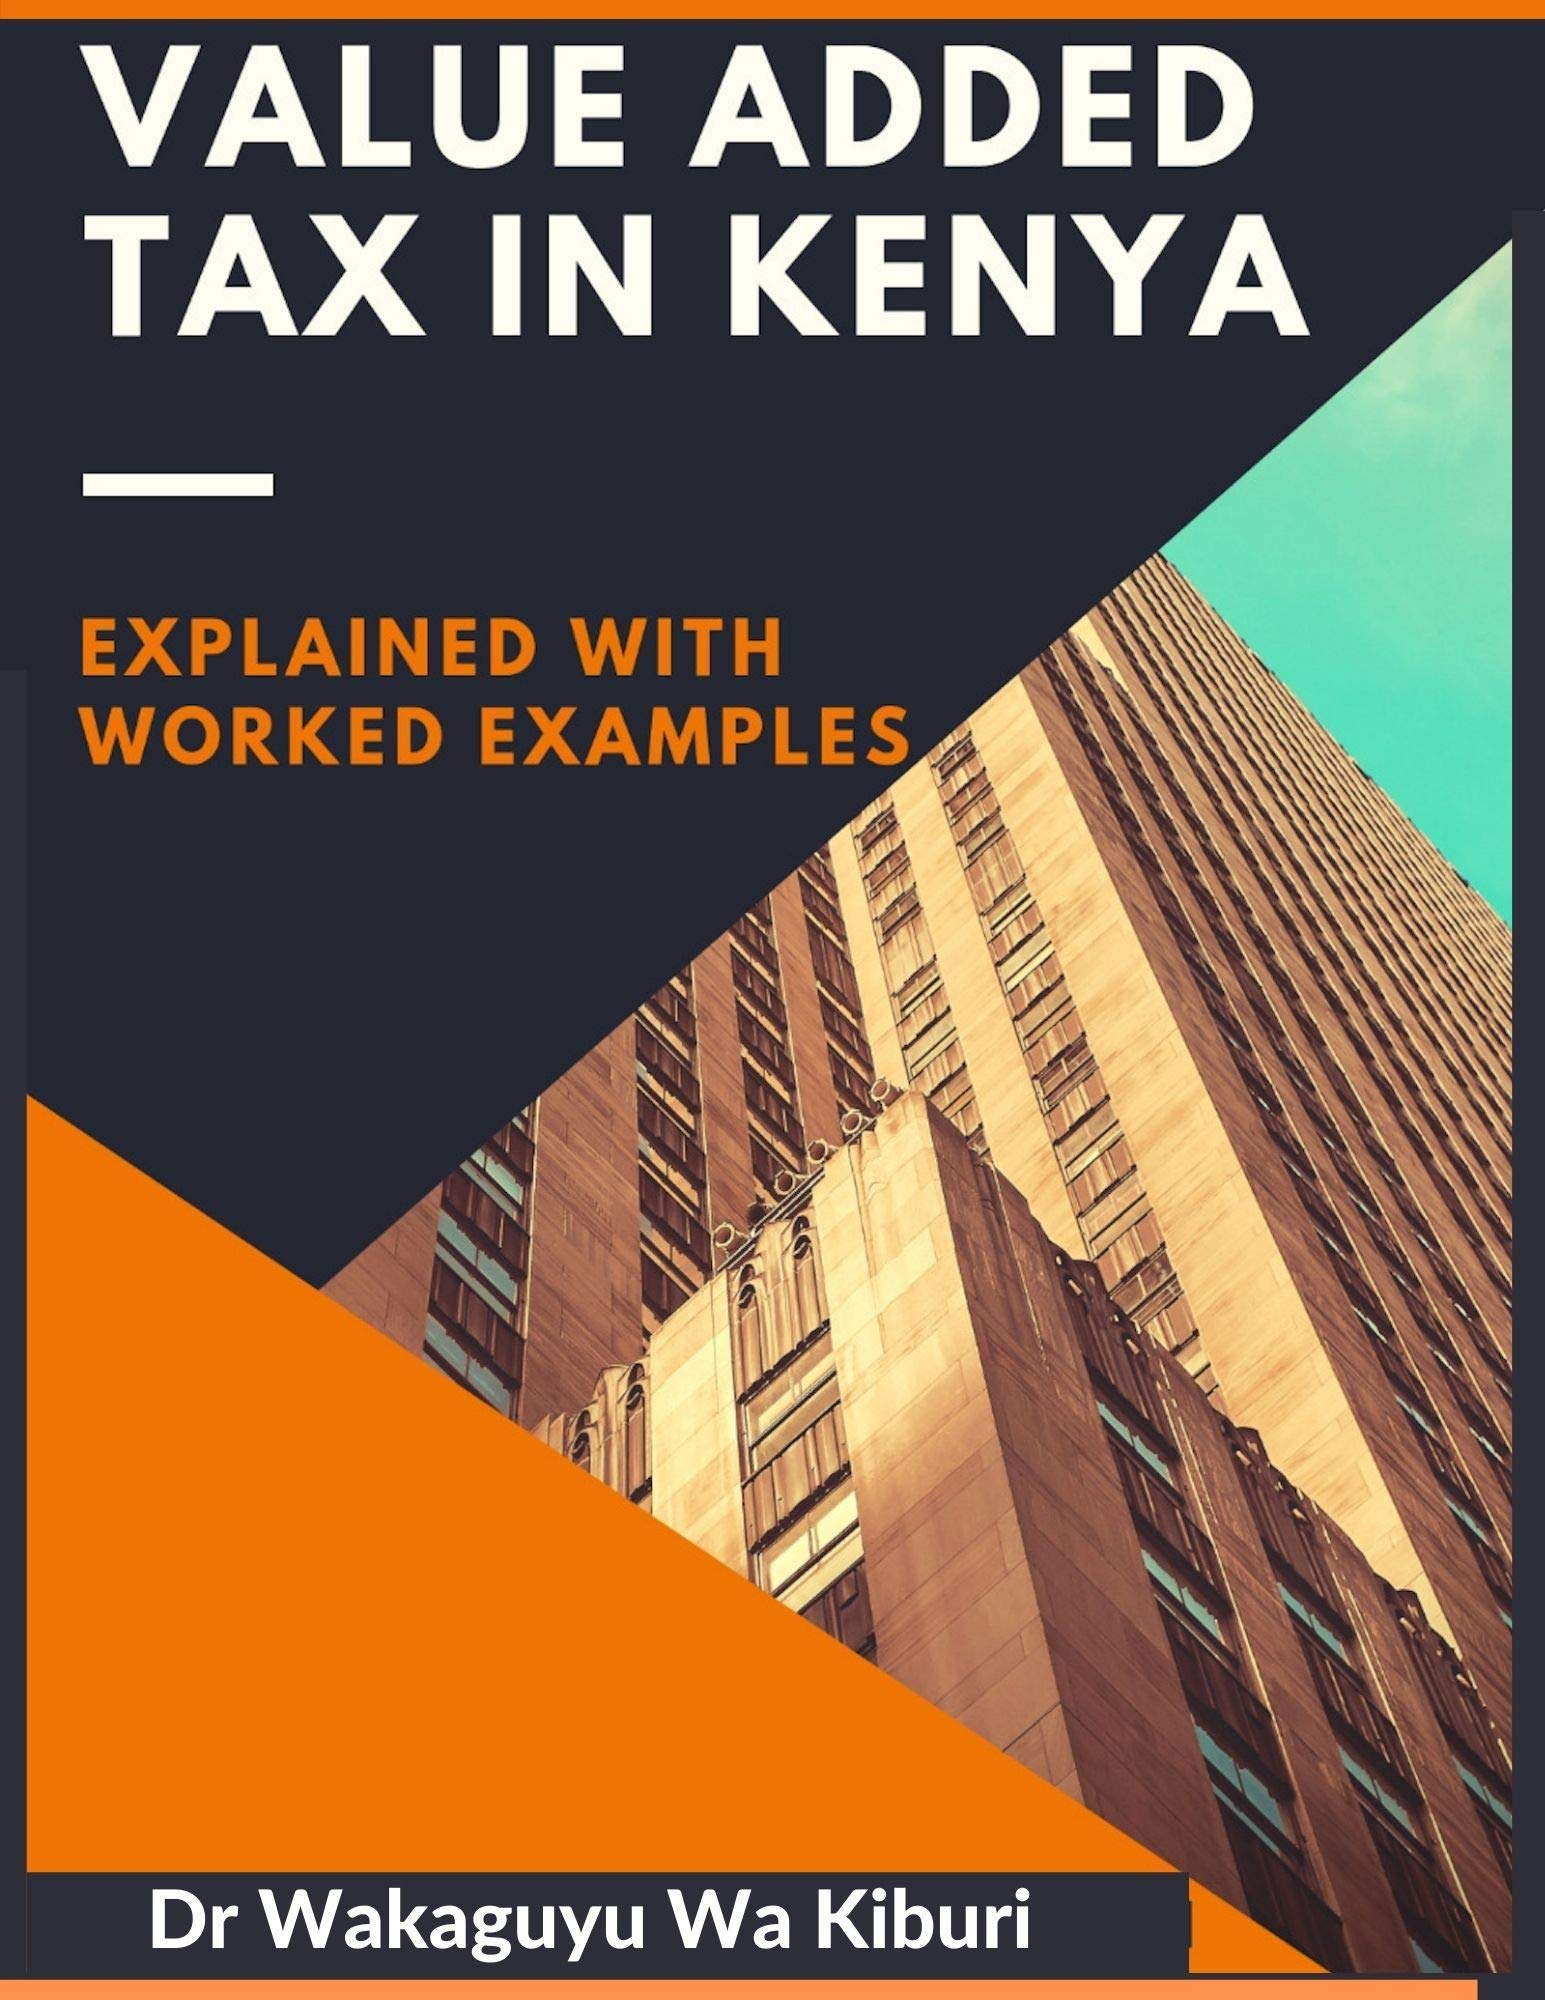 Value Added Tax In Kenya (explained with worked examples)